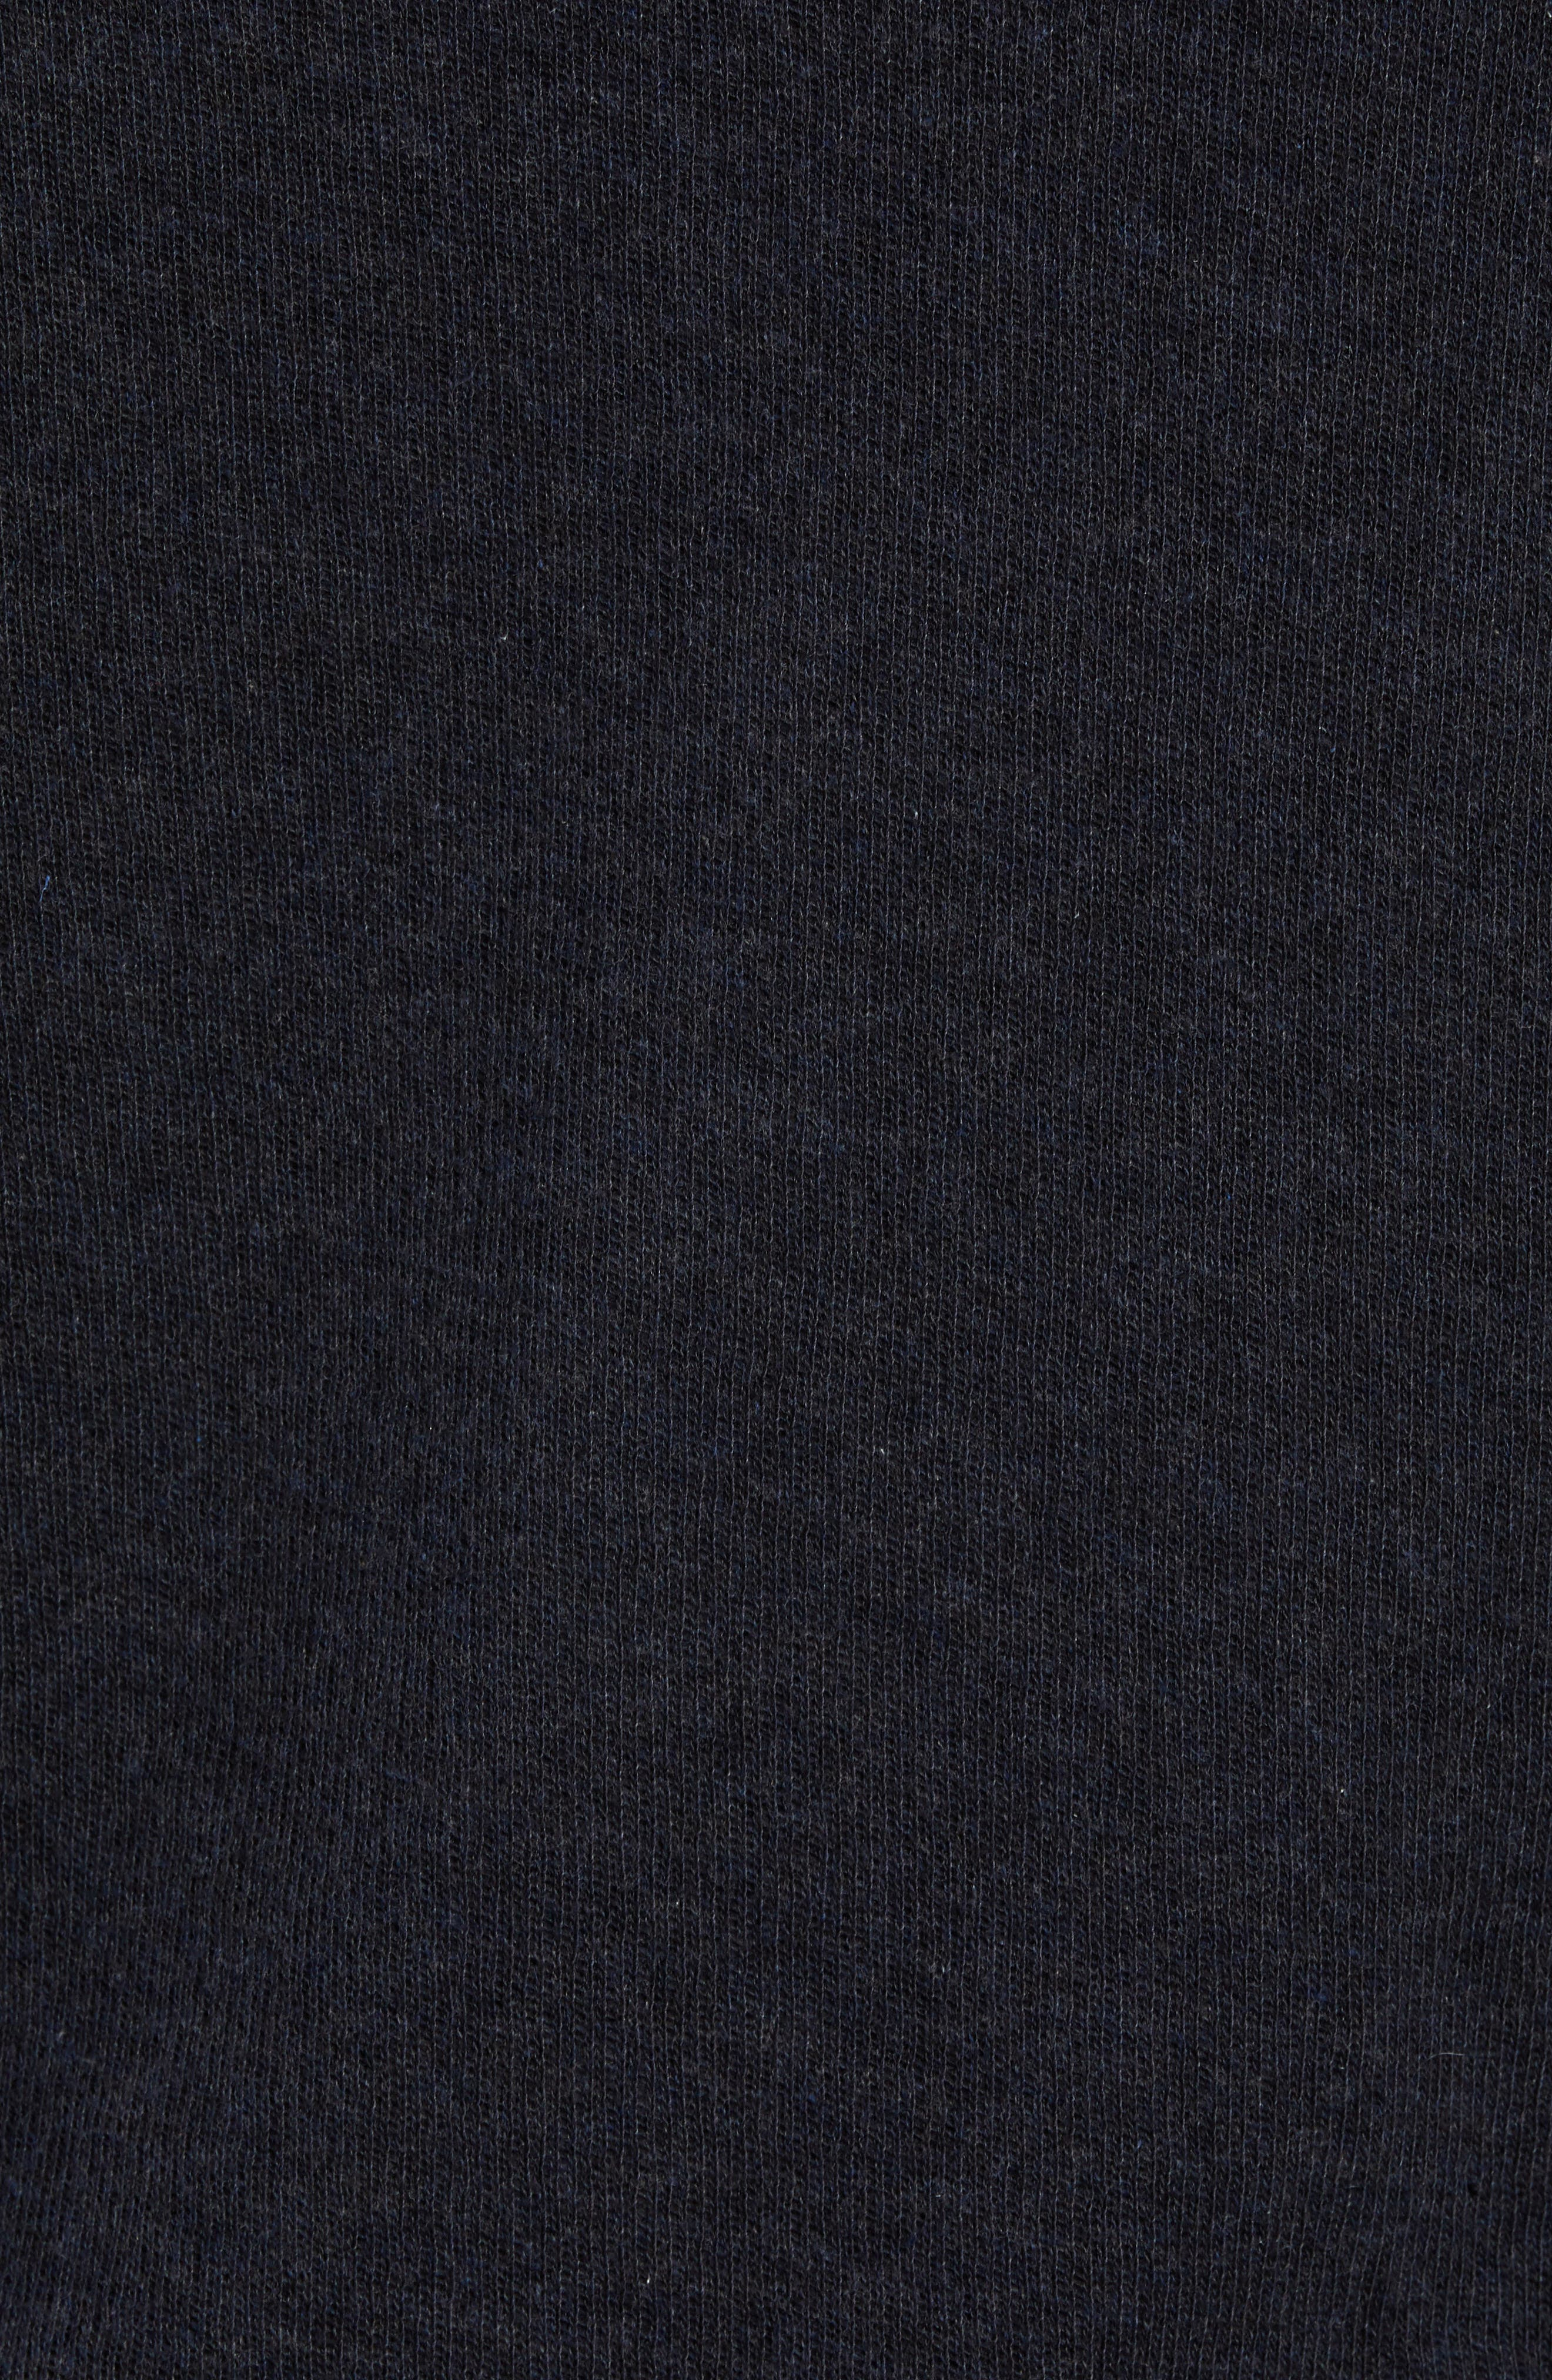 Double Knit Hoodie,                             Alternate thumbnail 5, color,                             H MANHATTAN NAVY